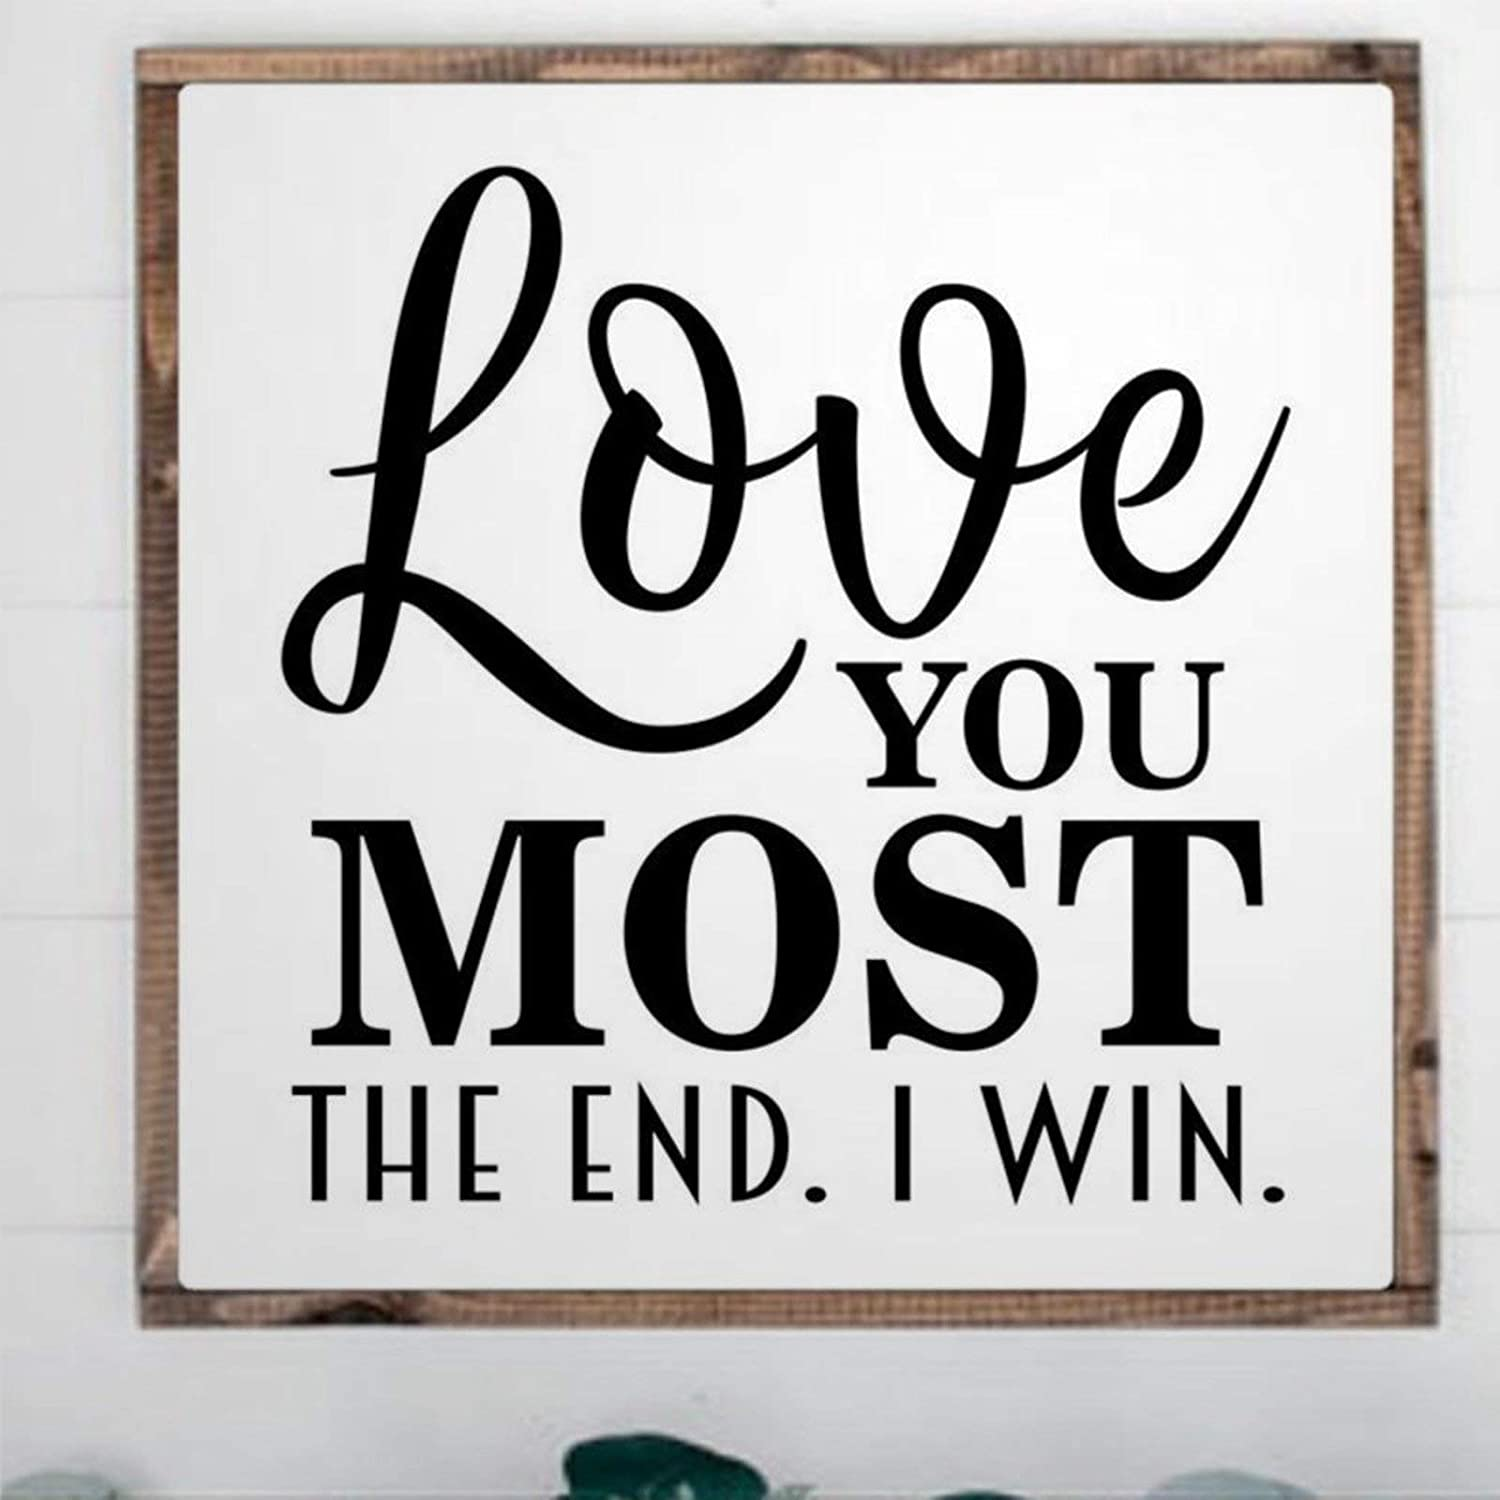 BYRON HOYLE Framed Wood Sign Love You Most The End I Win Funny Wall Hanger Wooden Sign Wall Art Home Decor Sign Bedroom Living Room Sign Best Present 30x30cm